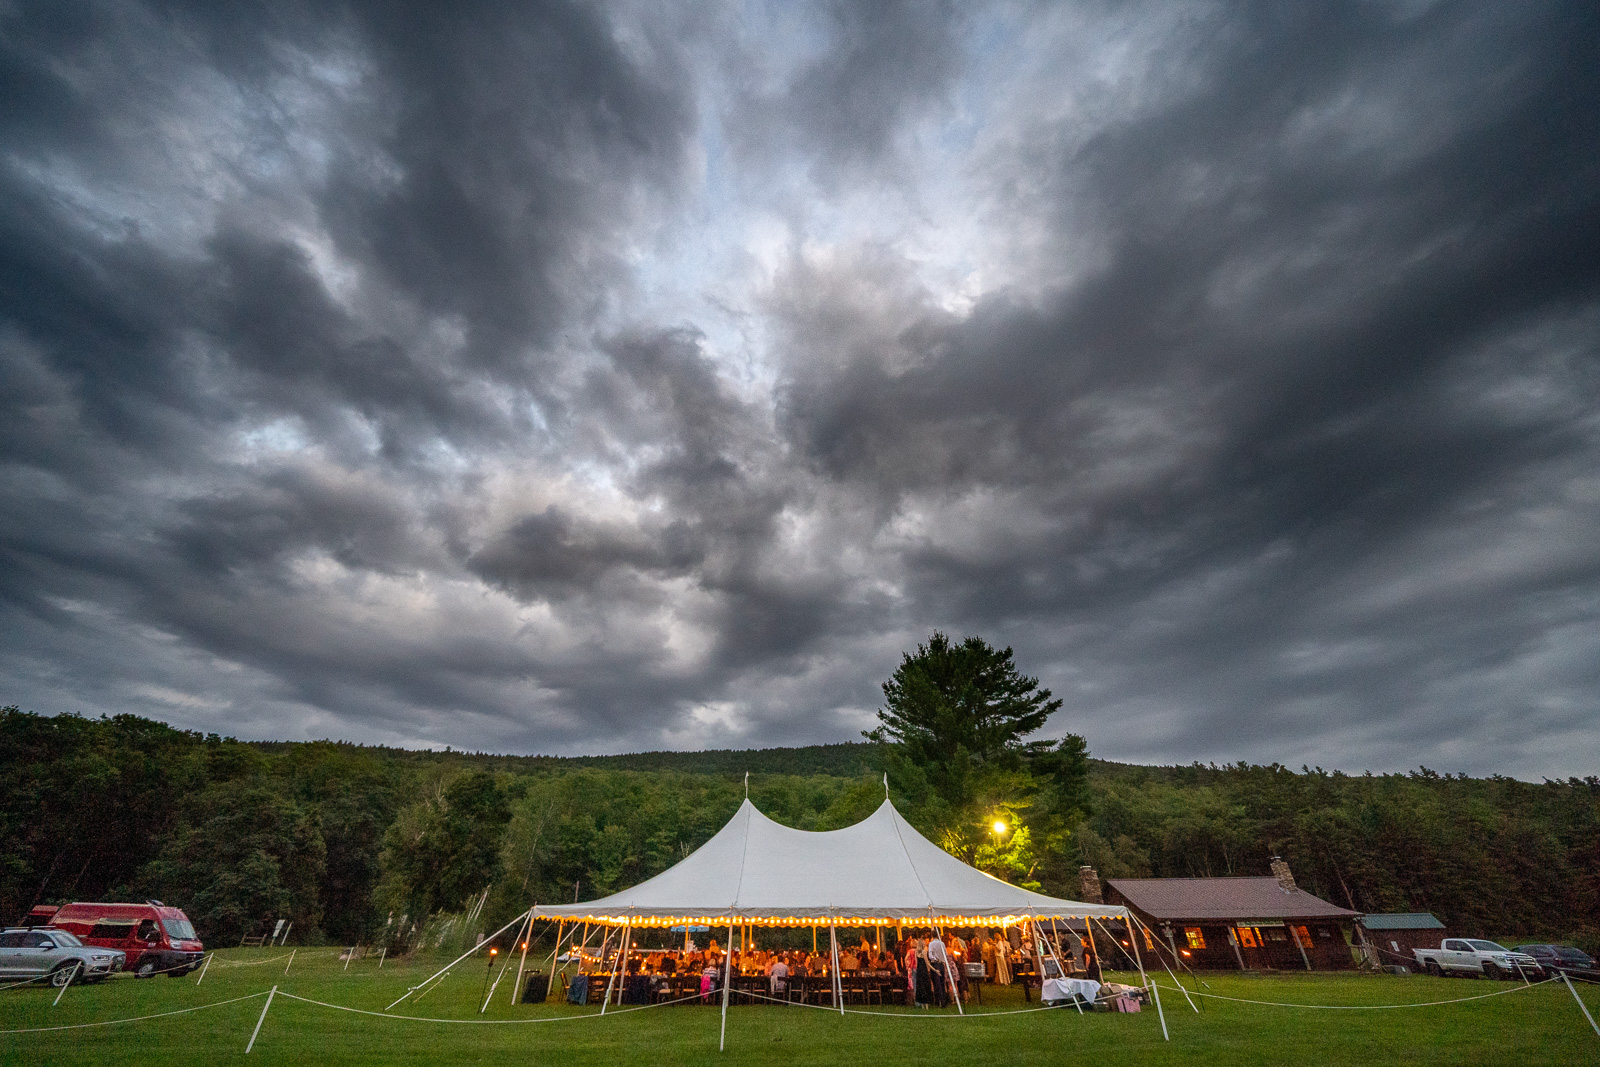 Moody sky over wedding tent